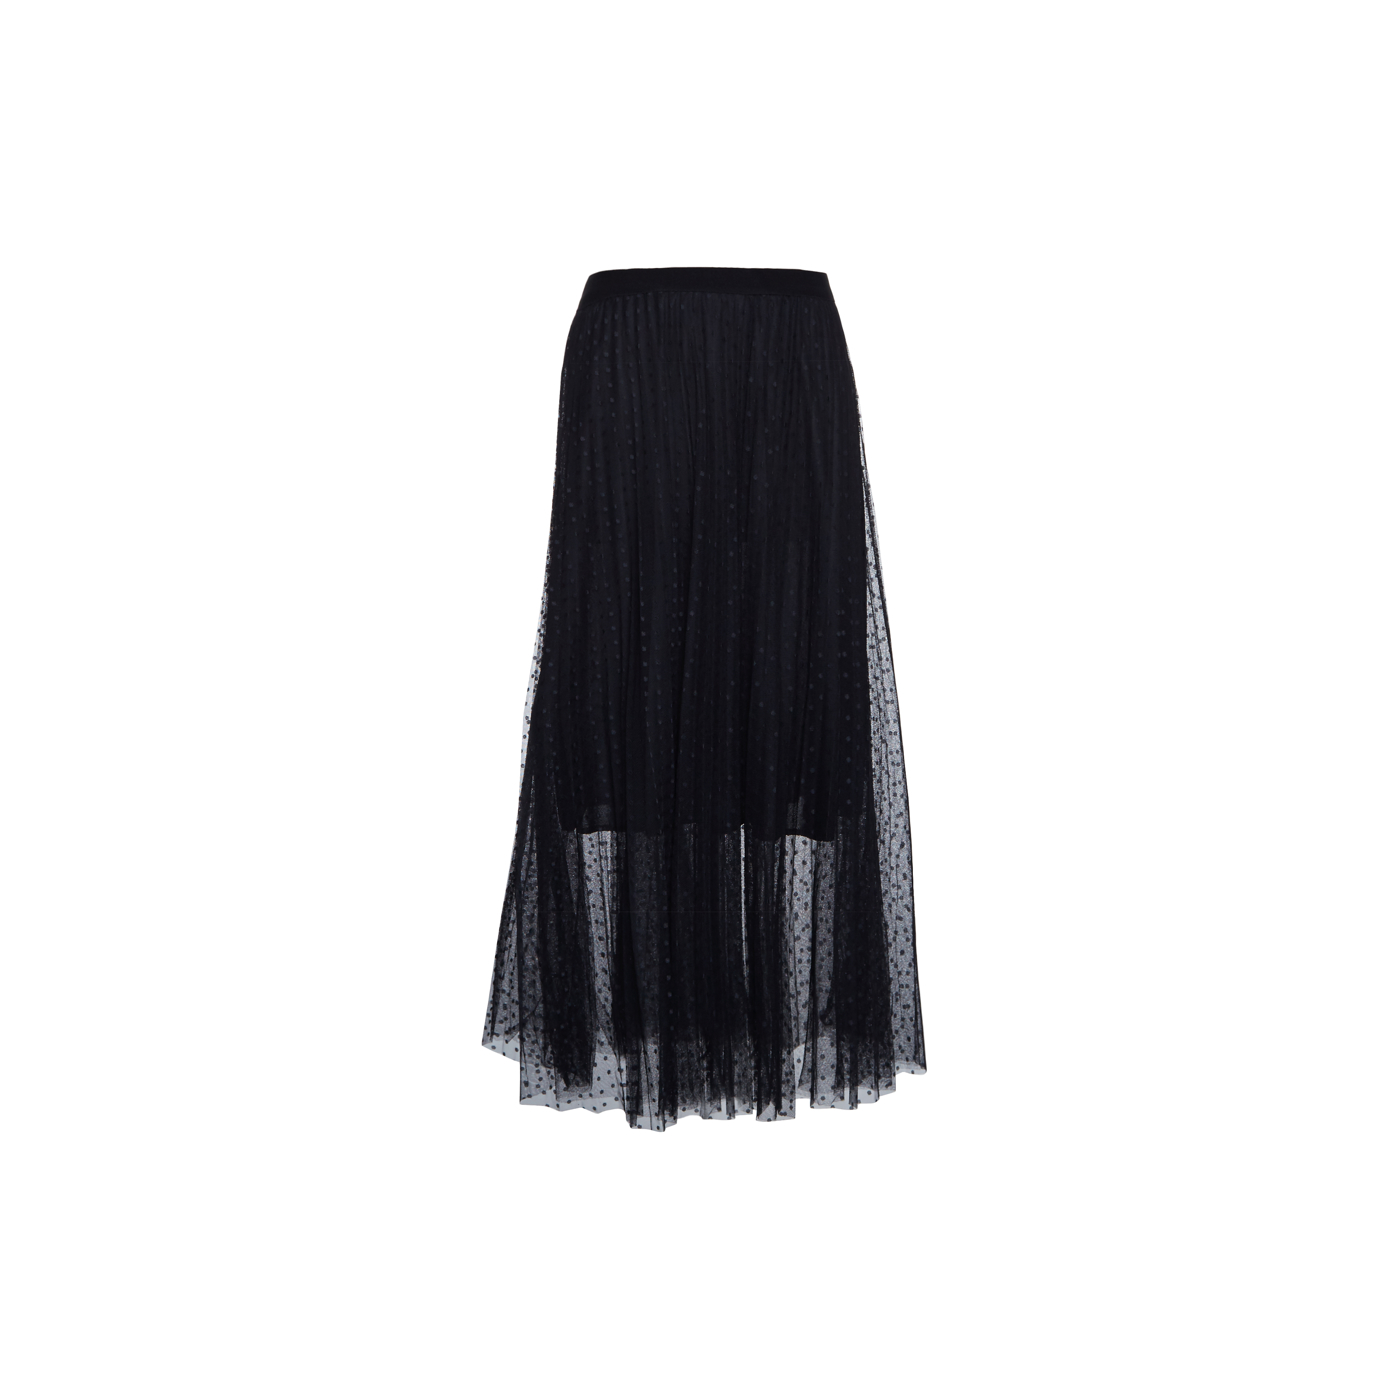 Paris Picked Dotted Black Long Skirt With Pleats